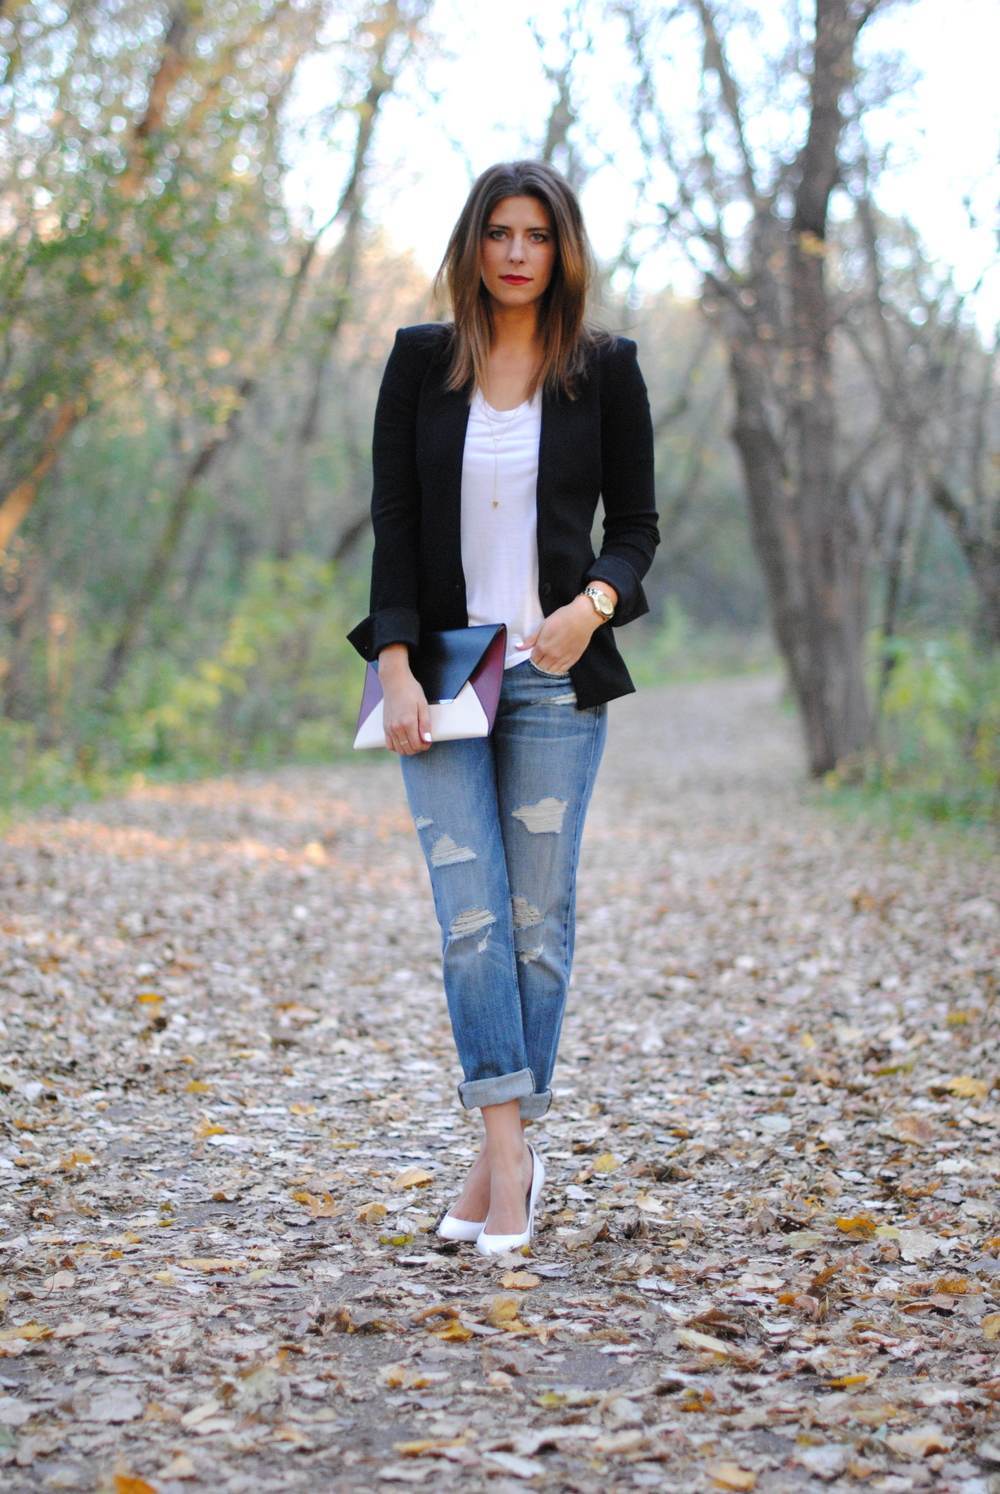 Helmut Lang blazer  Helmut Lang t shirt Boyfriend jeans Topshop pumps, similar here and here BCBG clutch, similar here Lariat necklace Michael Kors watch